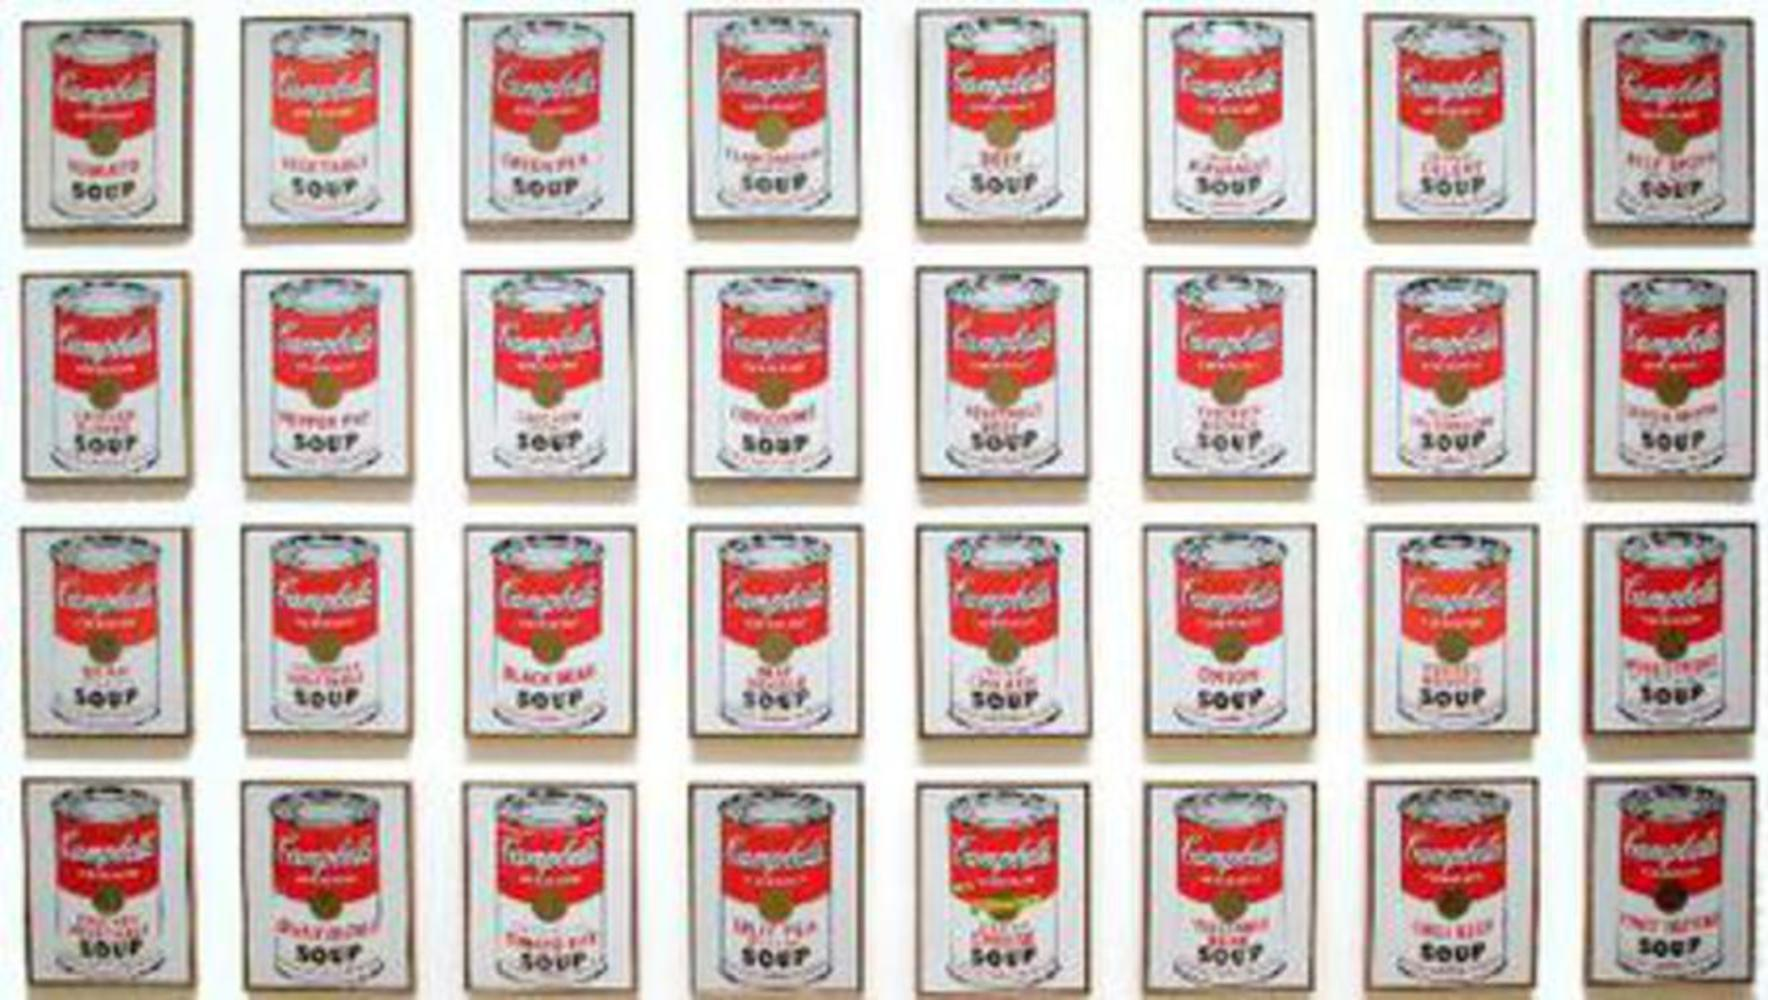 Campbells soup cans moma.thumb